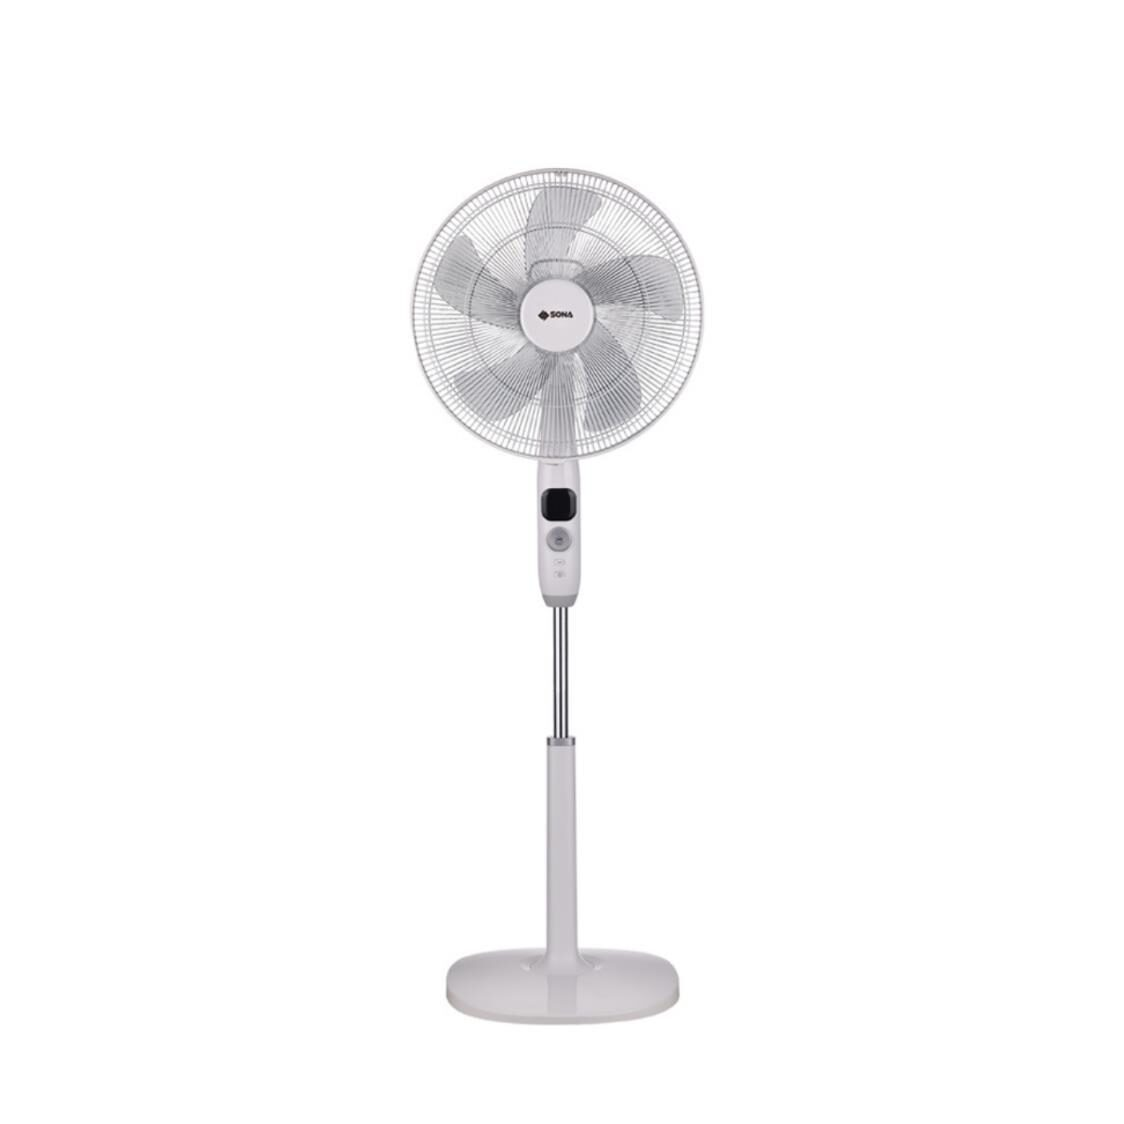 Remote DC Stand Fan 16 SFS 1186